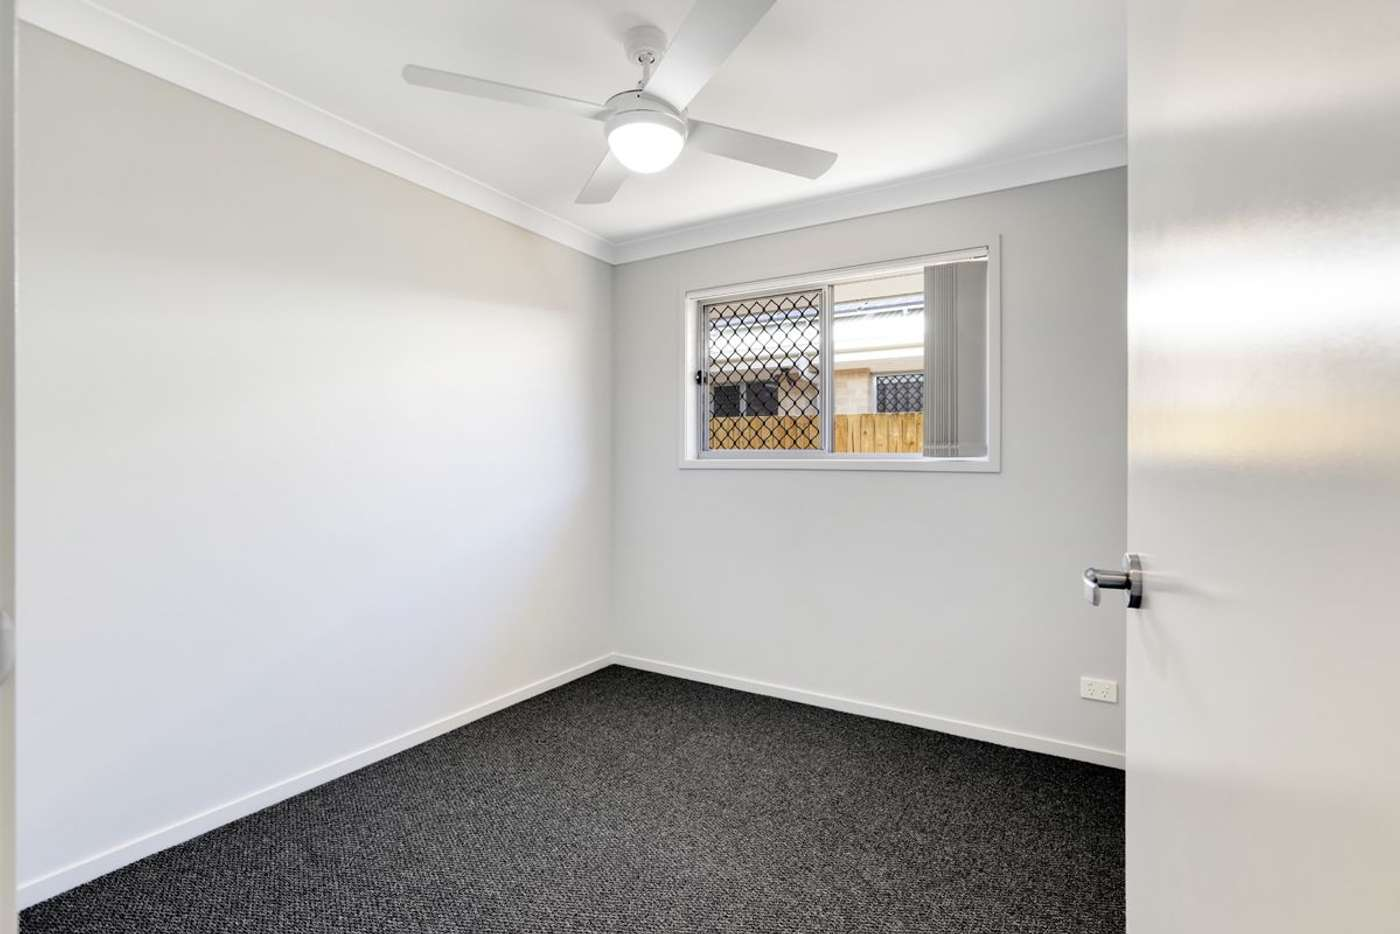 Seventh view of Homely house listing, 1/38 Azorean Street, Griffin QLD 4503